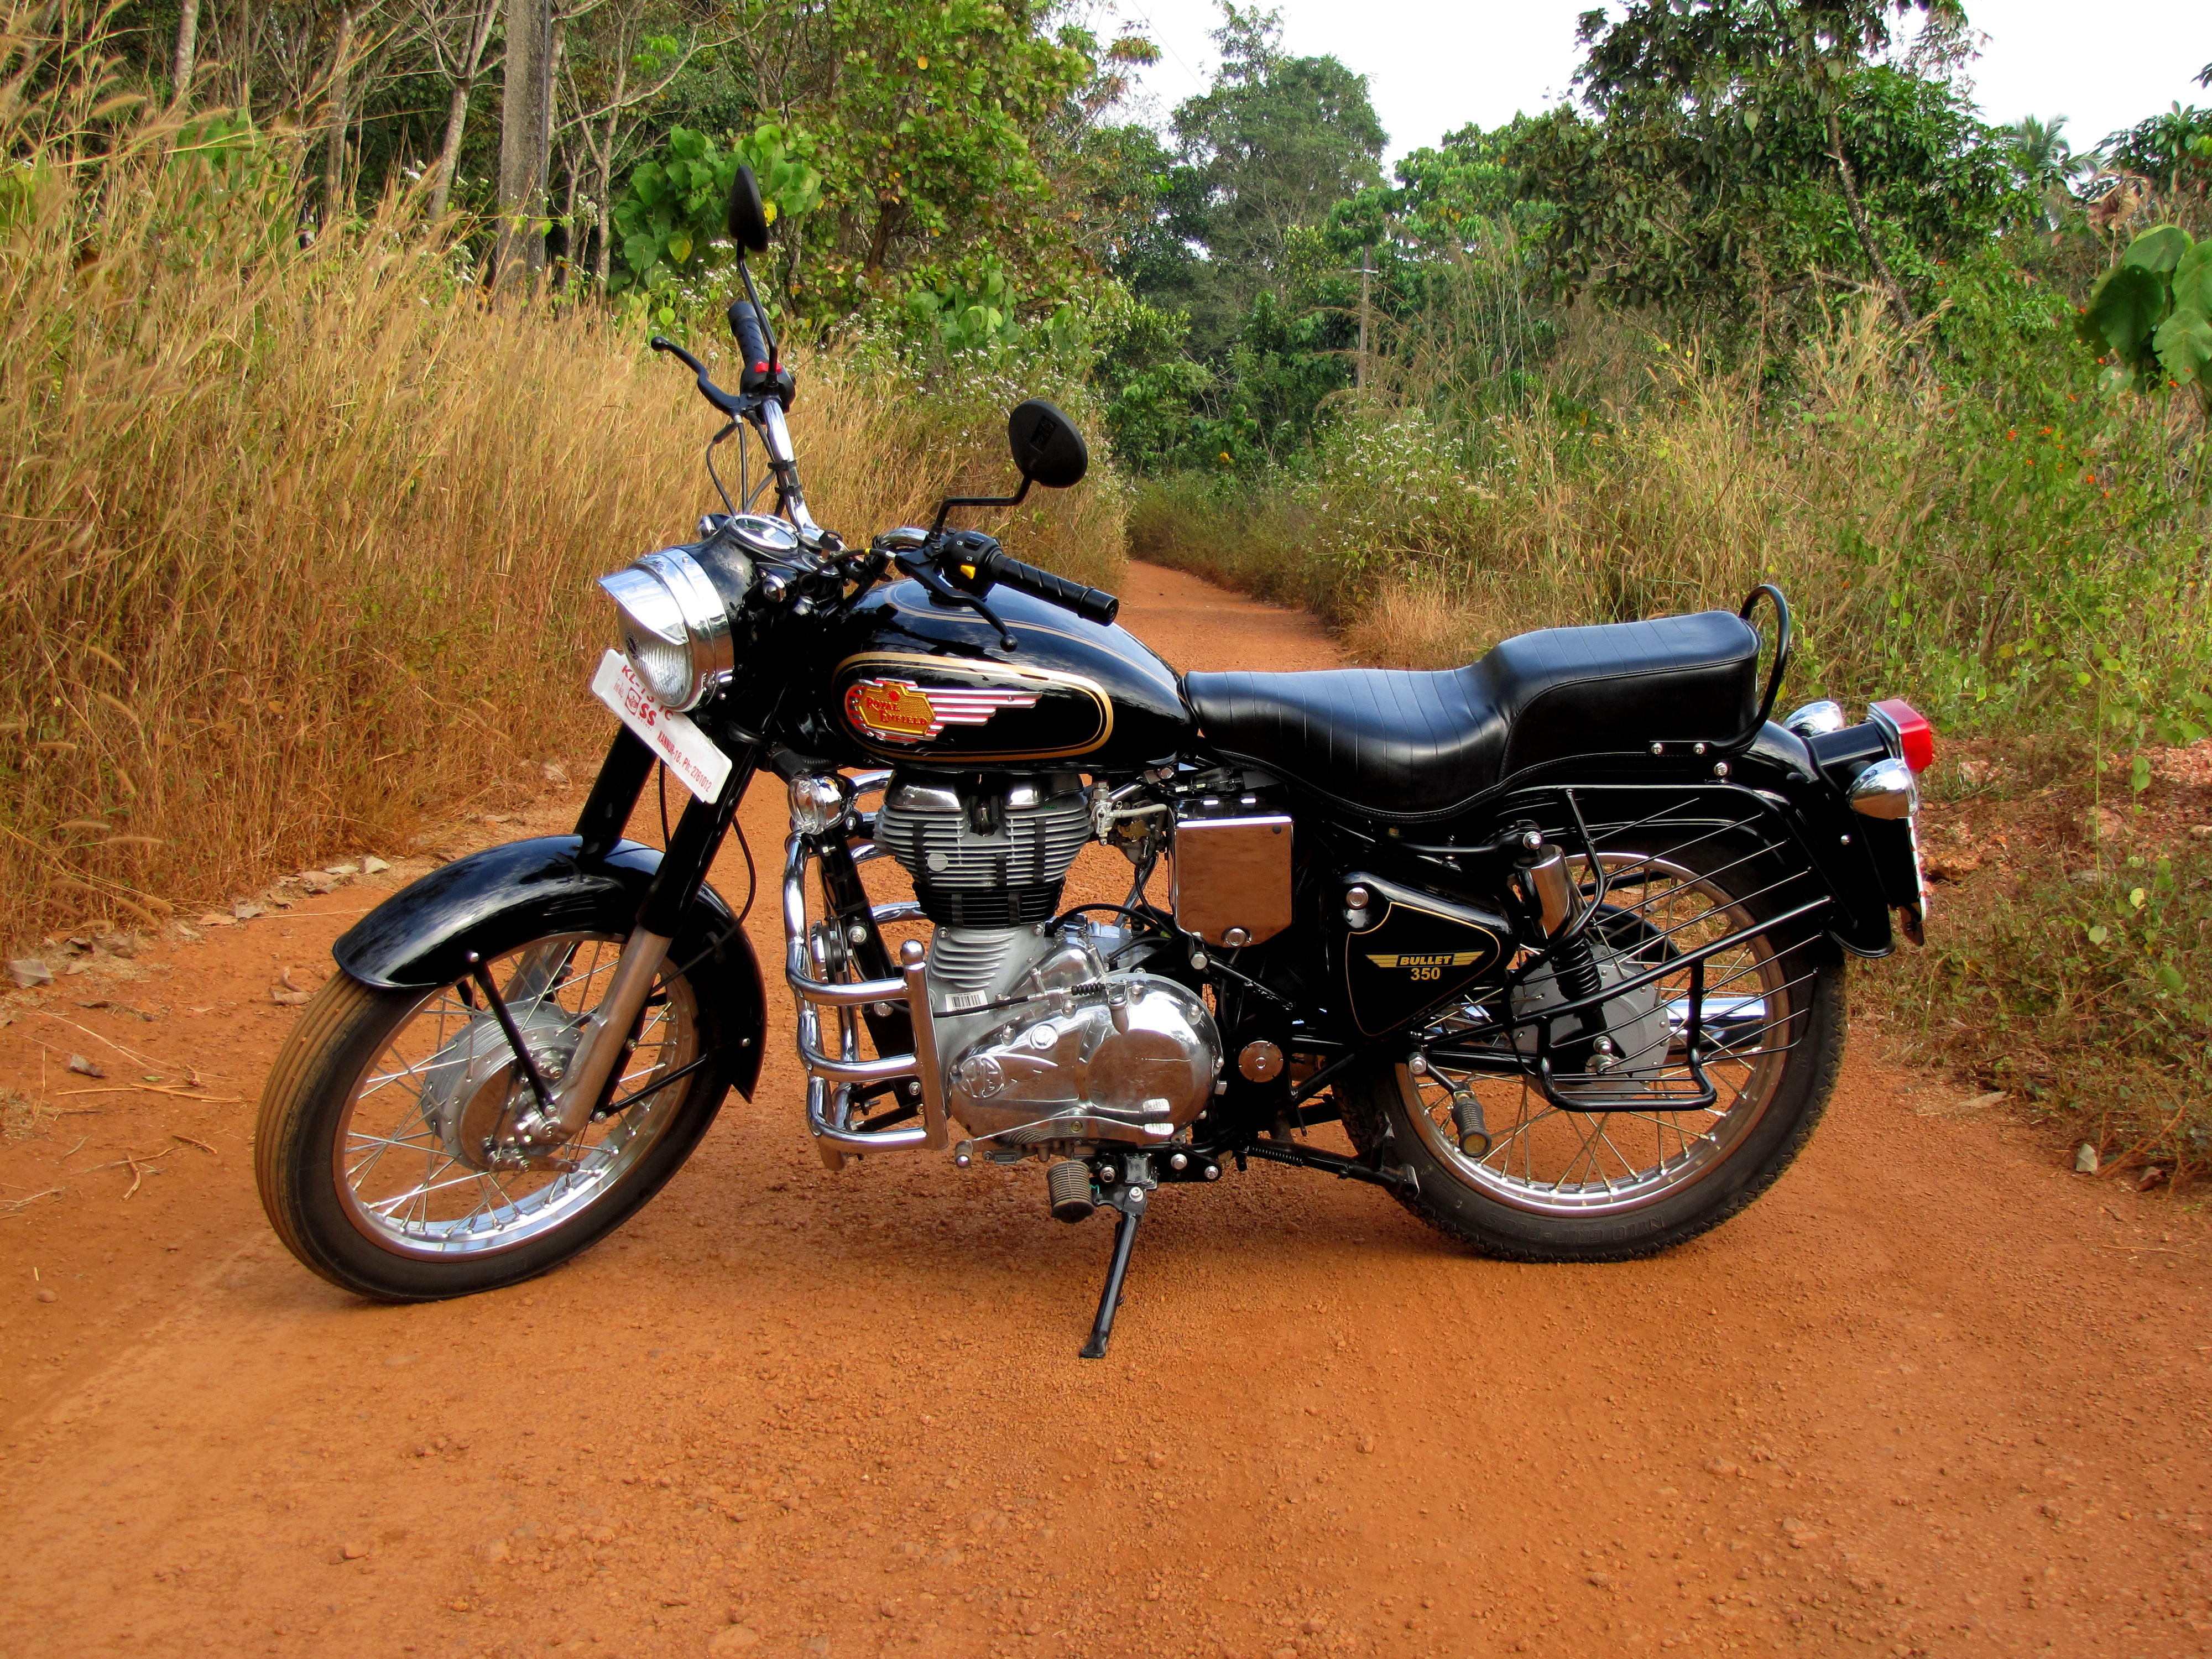 Royal Enfield Bullet 500 Deluxe AVL 2010 images #124036